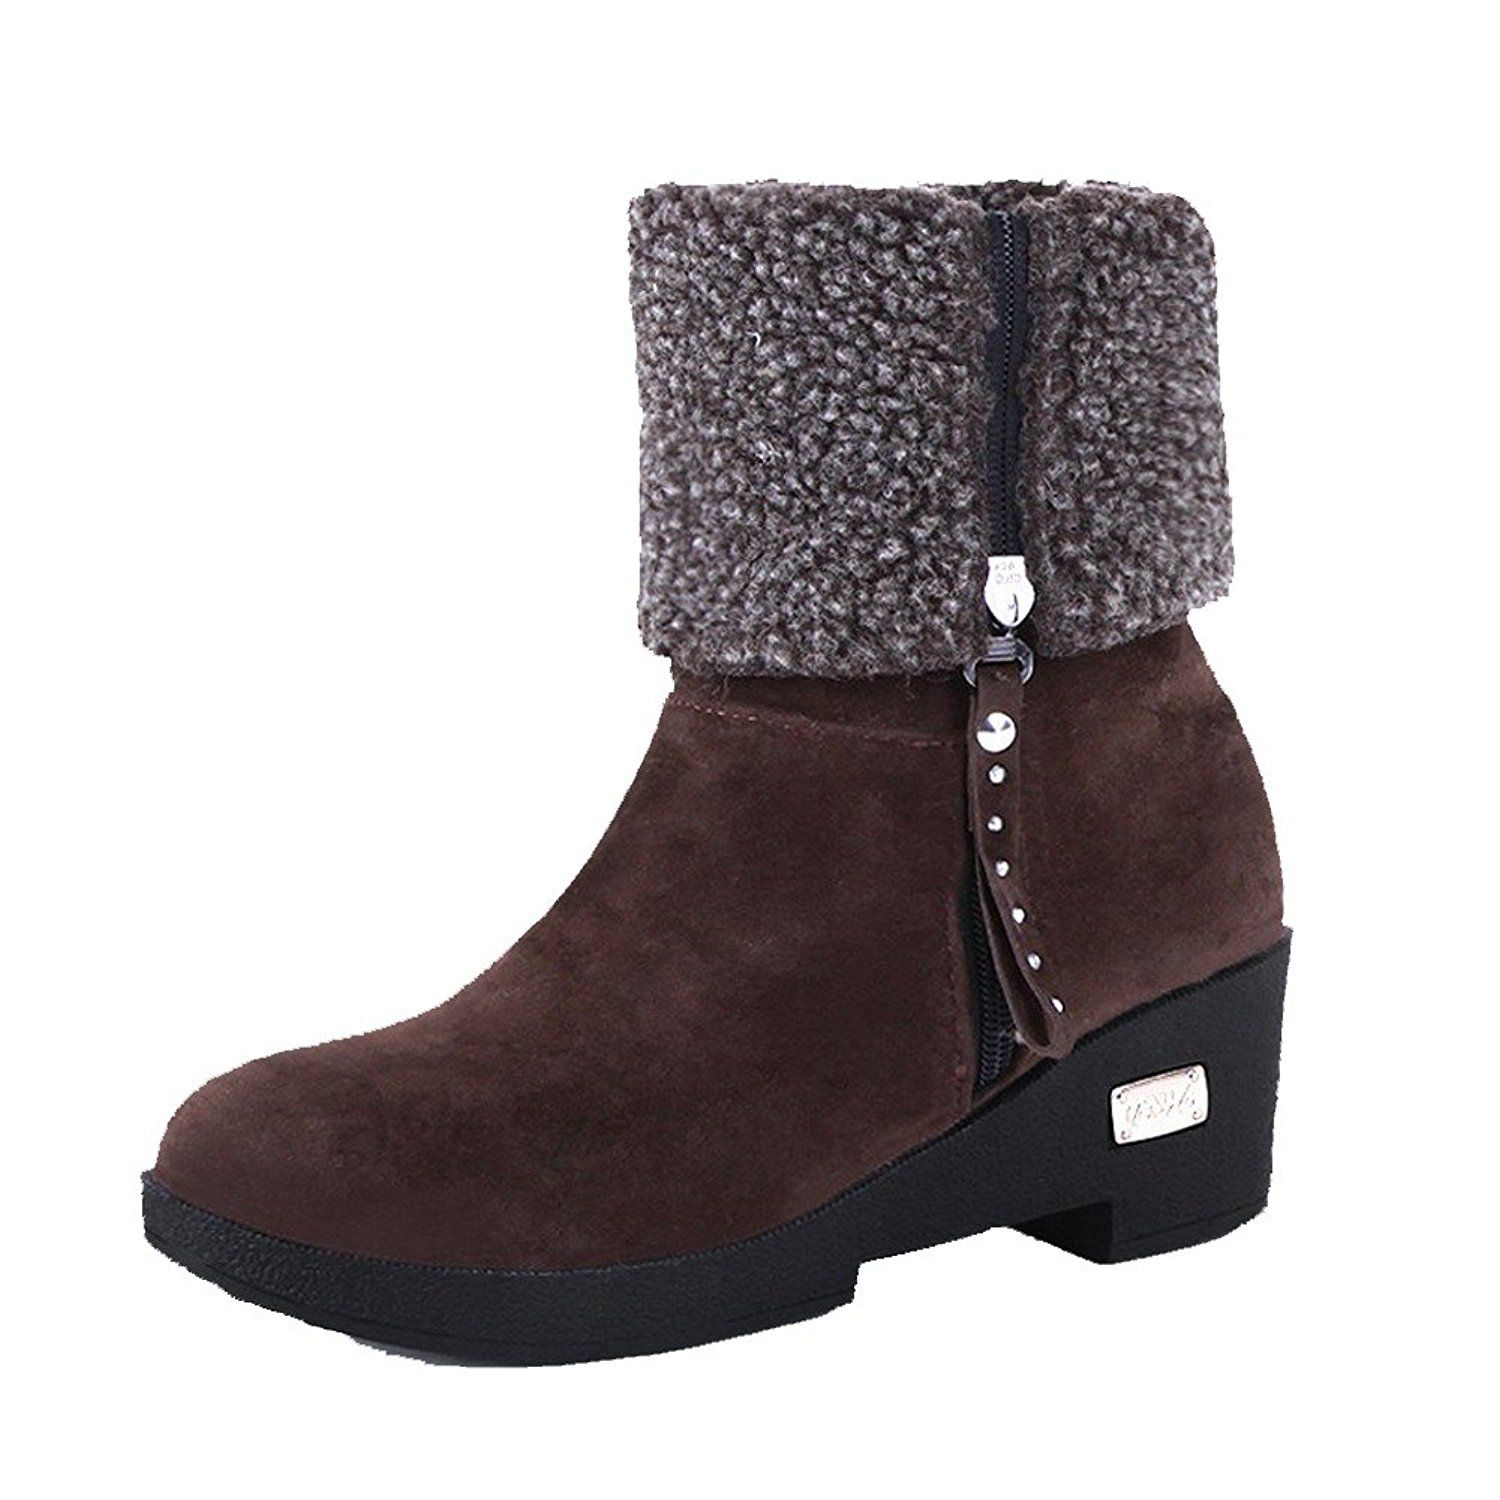 Allhqfashion Women S Low Top Solid Zipper Round Closed Toe Kitten Heels Boots Hurry Check Out This Grea Women S Over The Knee Boots Boots